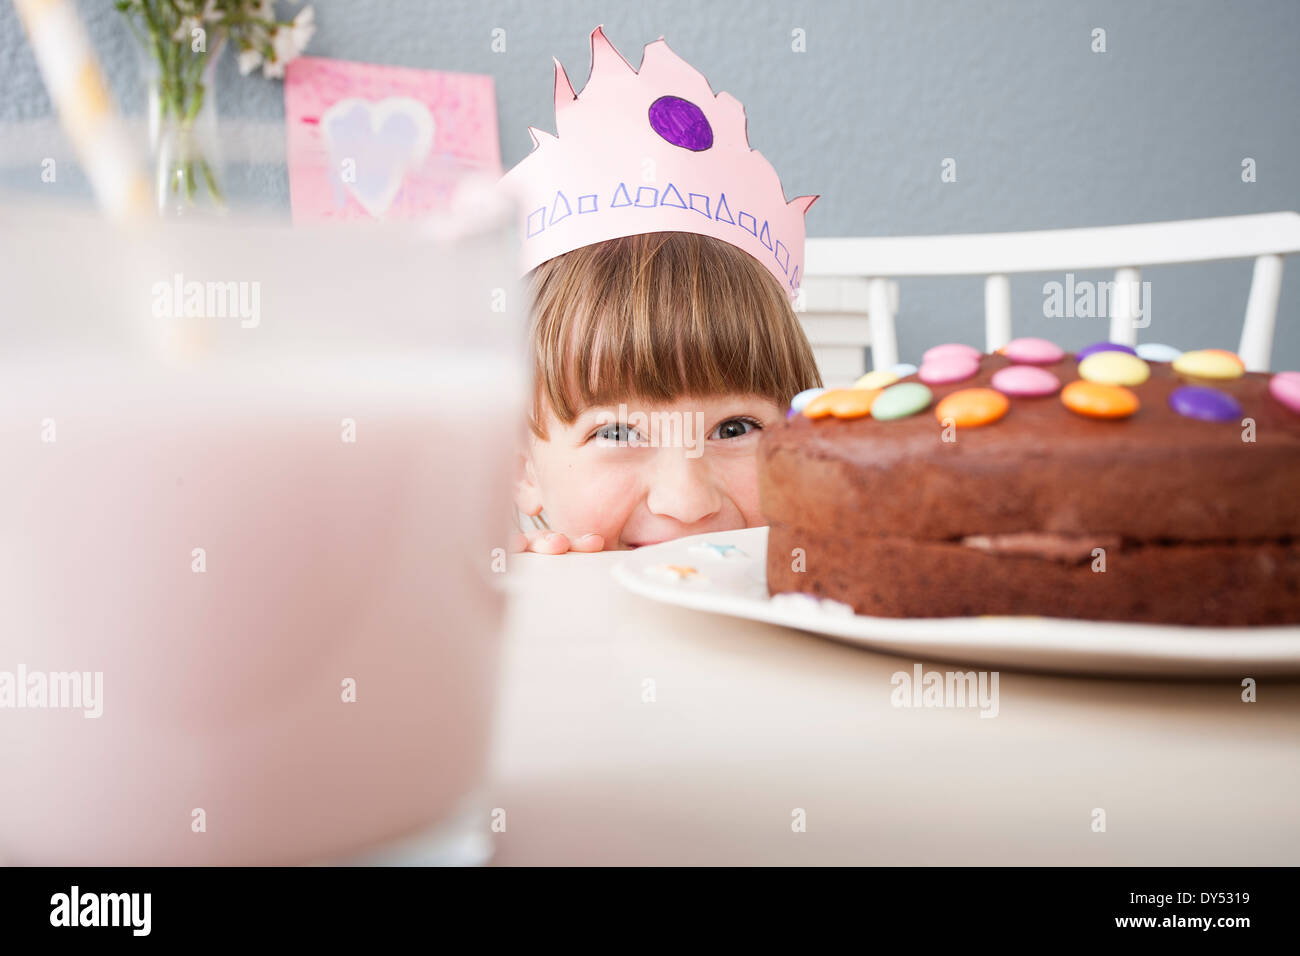 Girl hiding behind cake - Stock Image